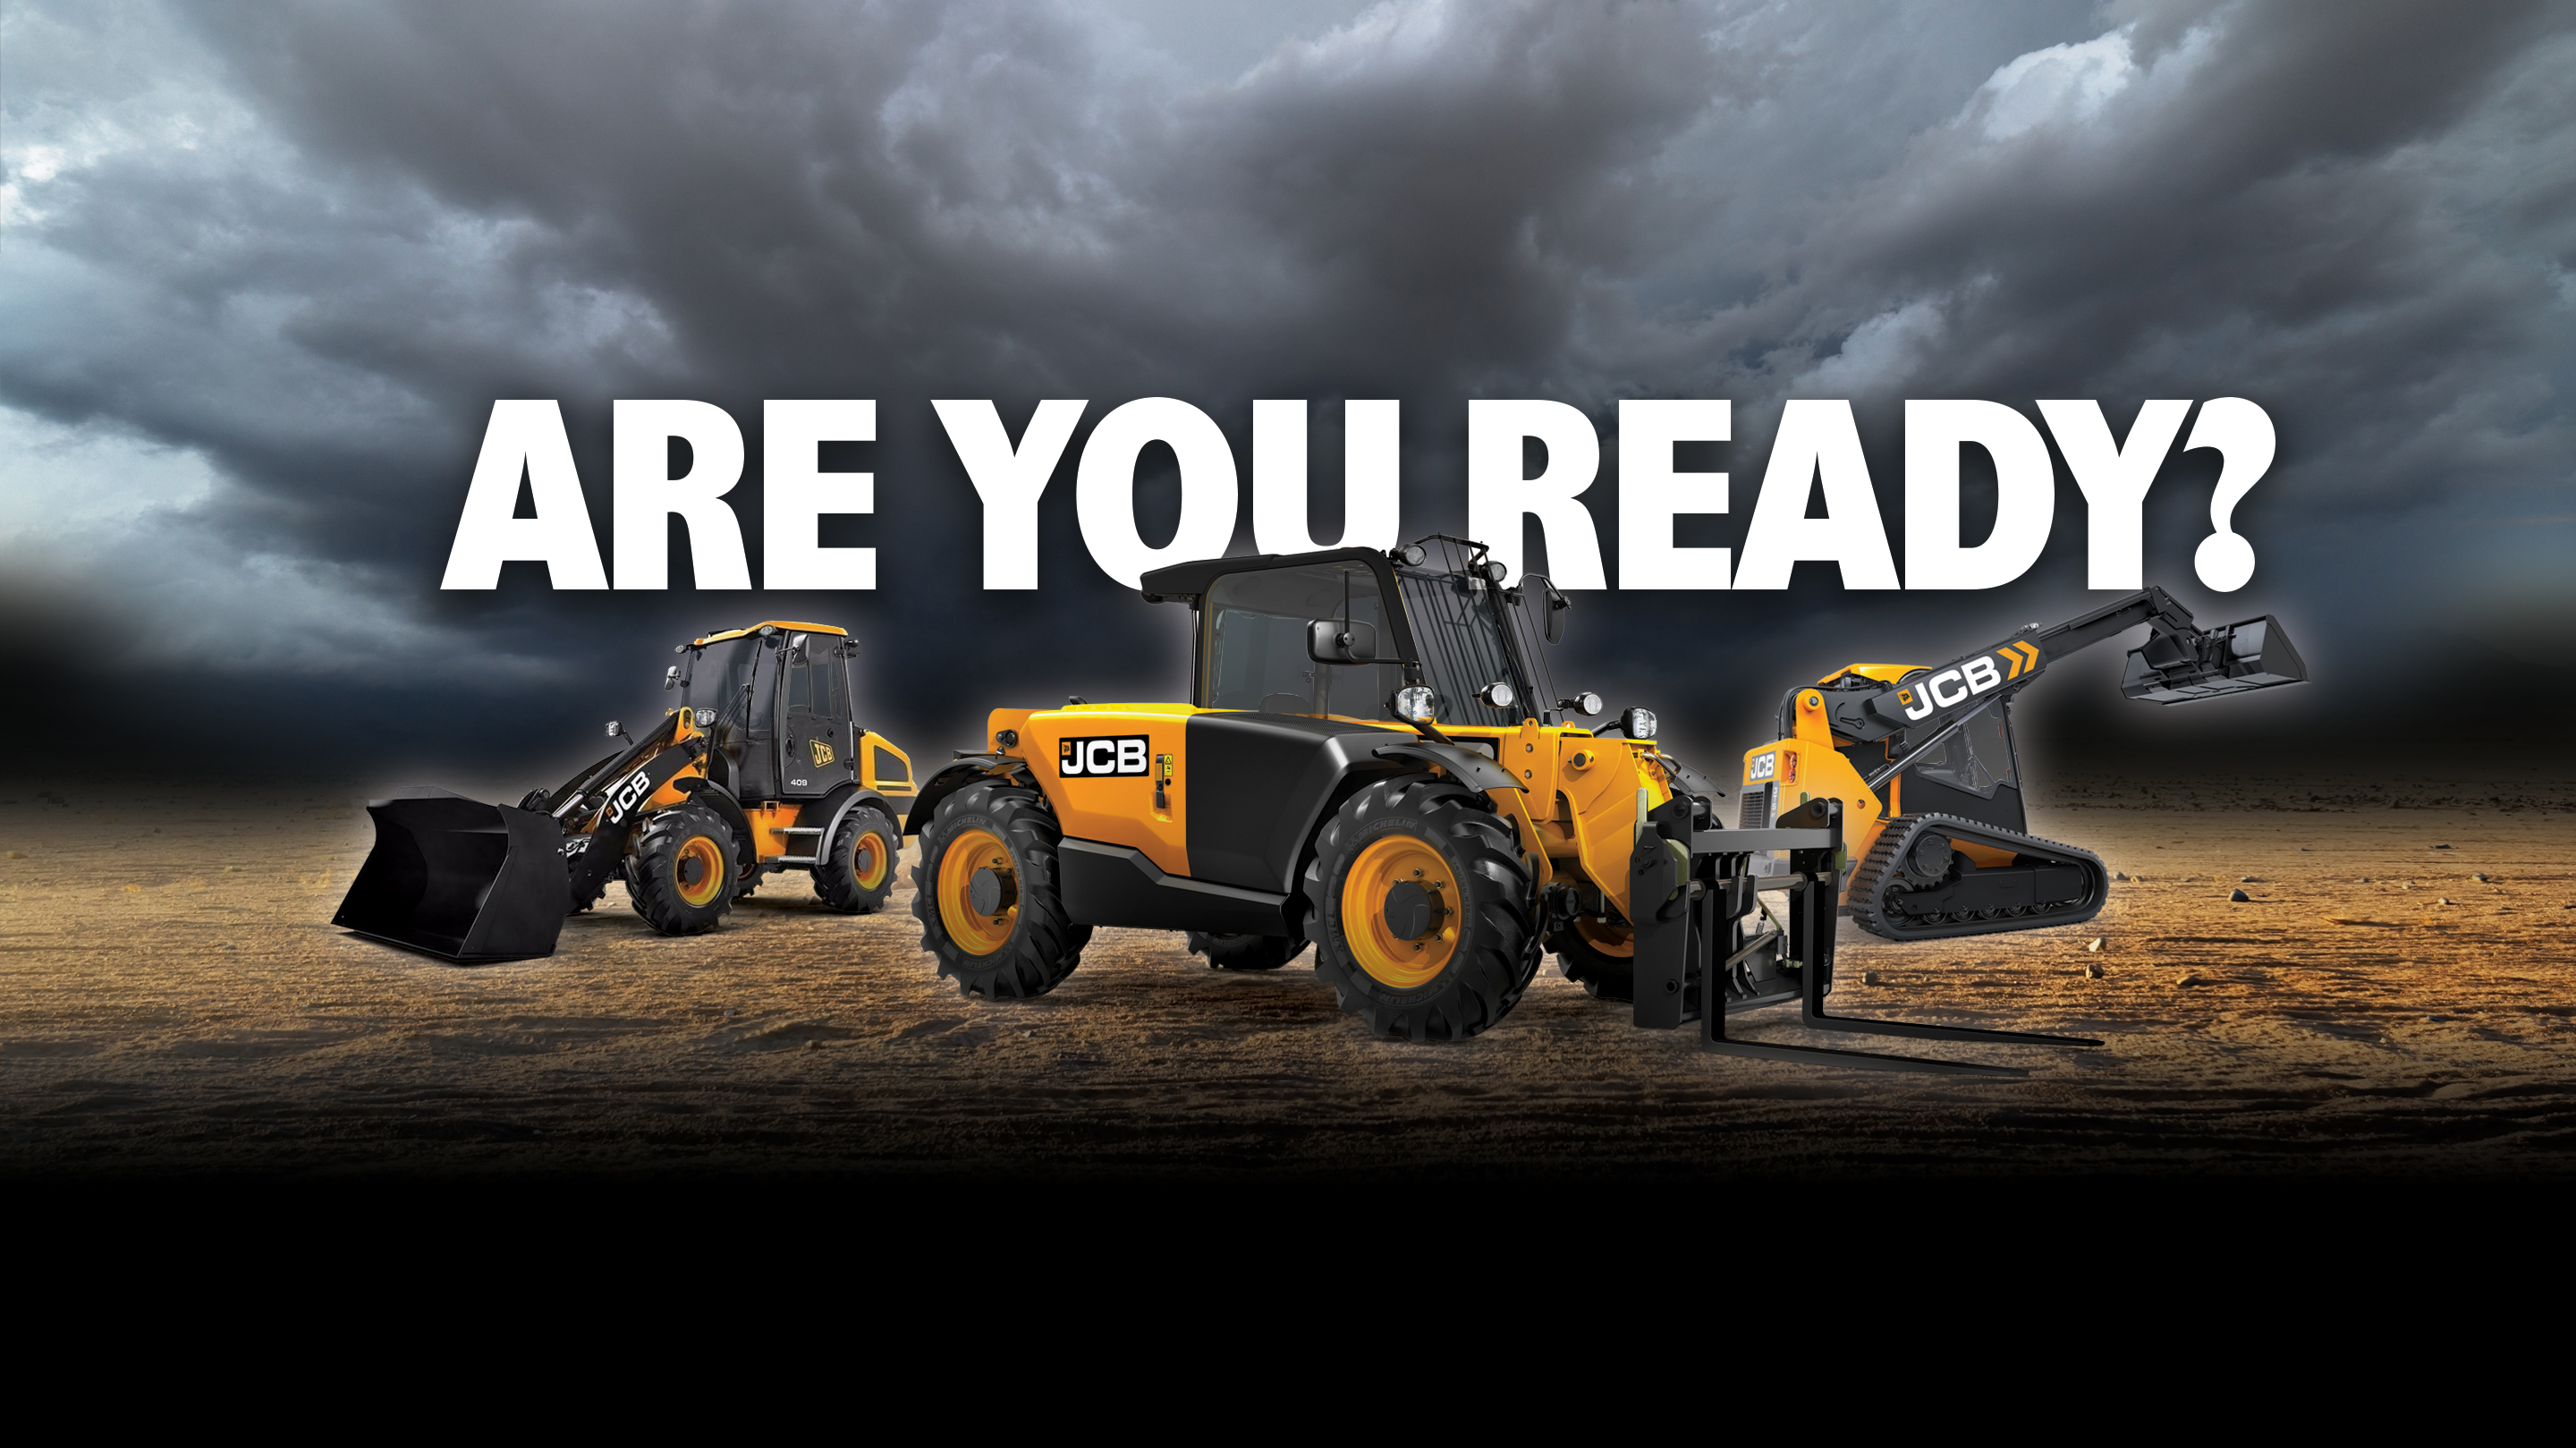 heavy equipment dealer Monk JCB